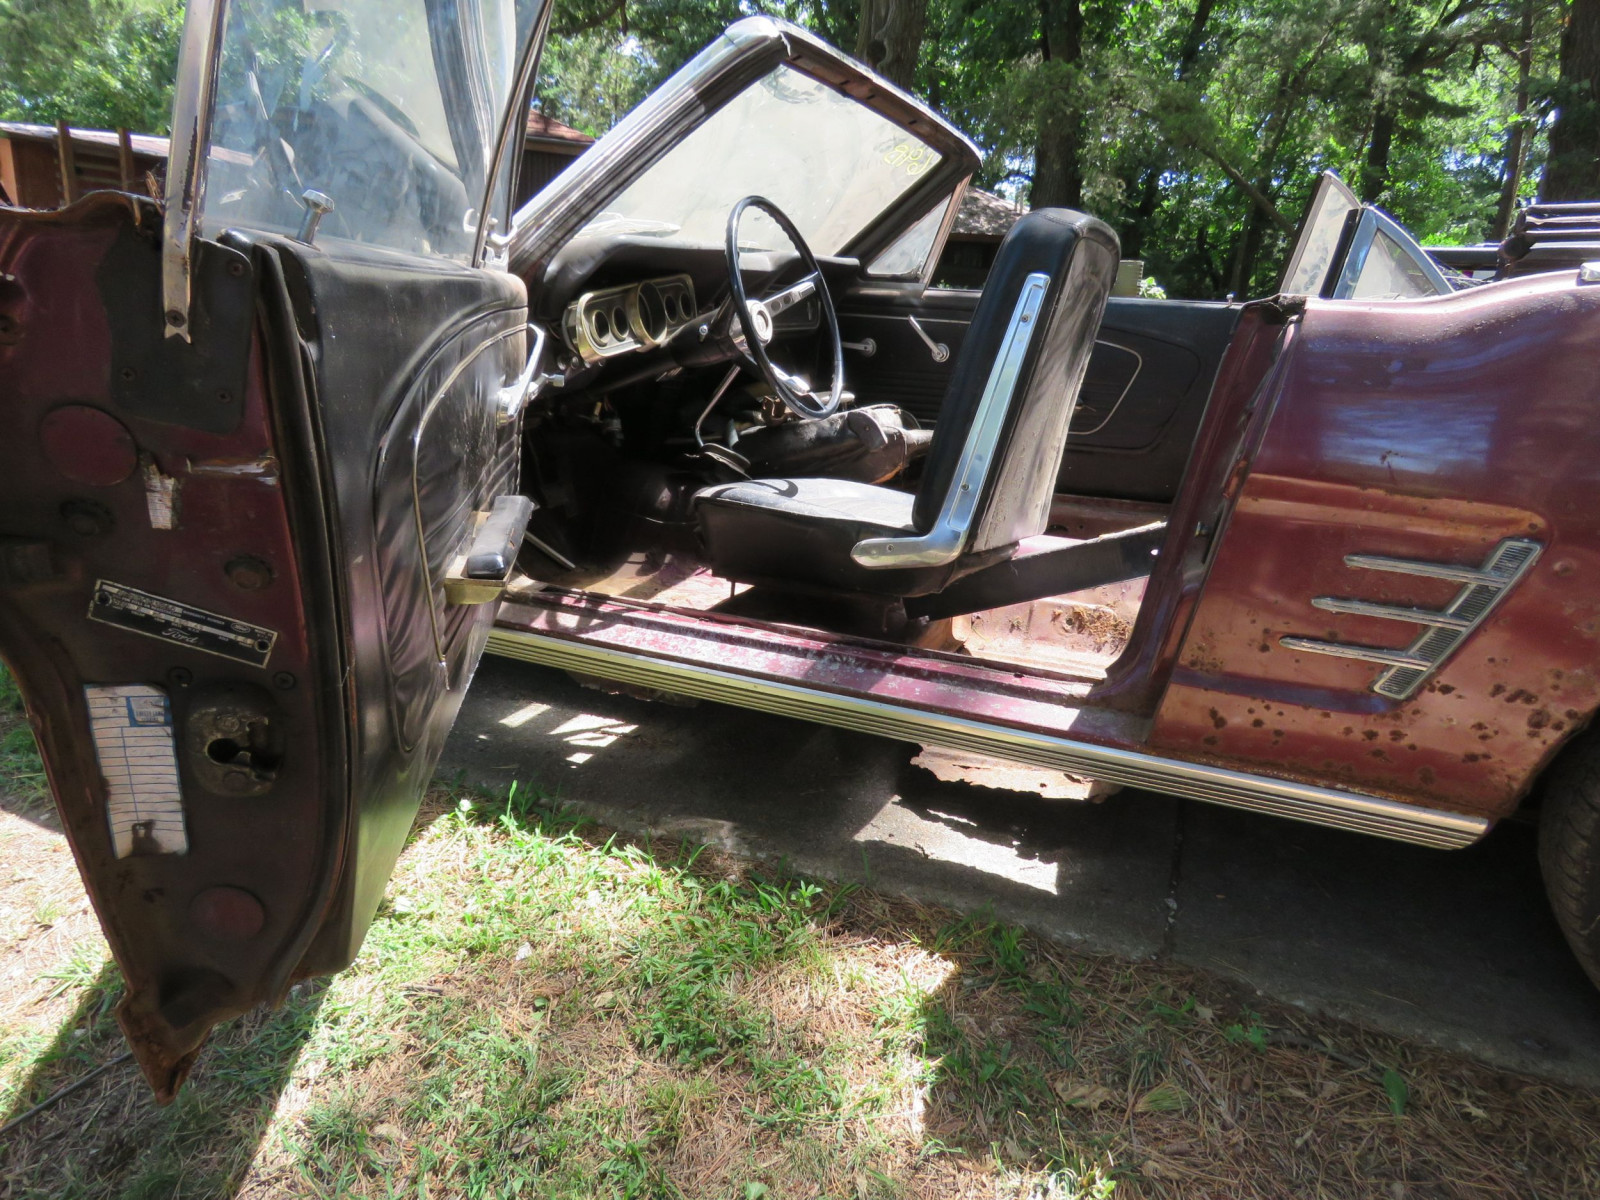 1966 Ford Mustang Convertible Project - Image 12